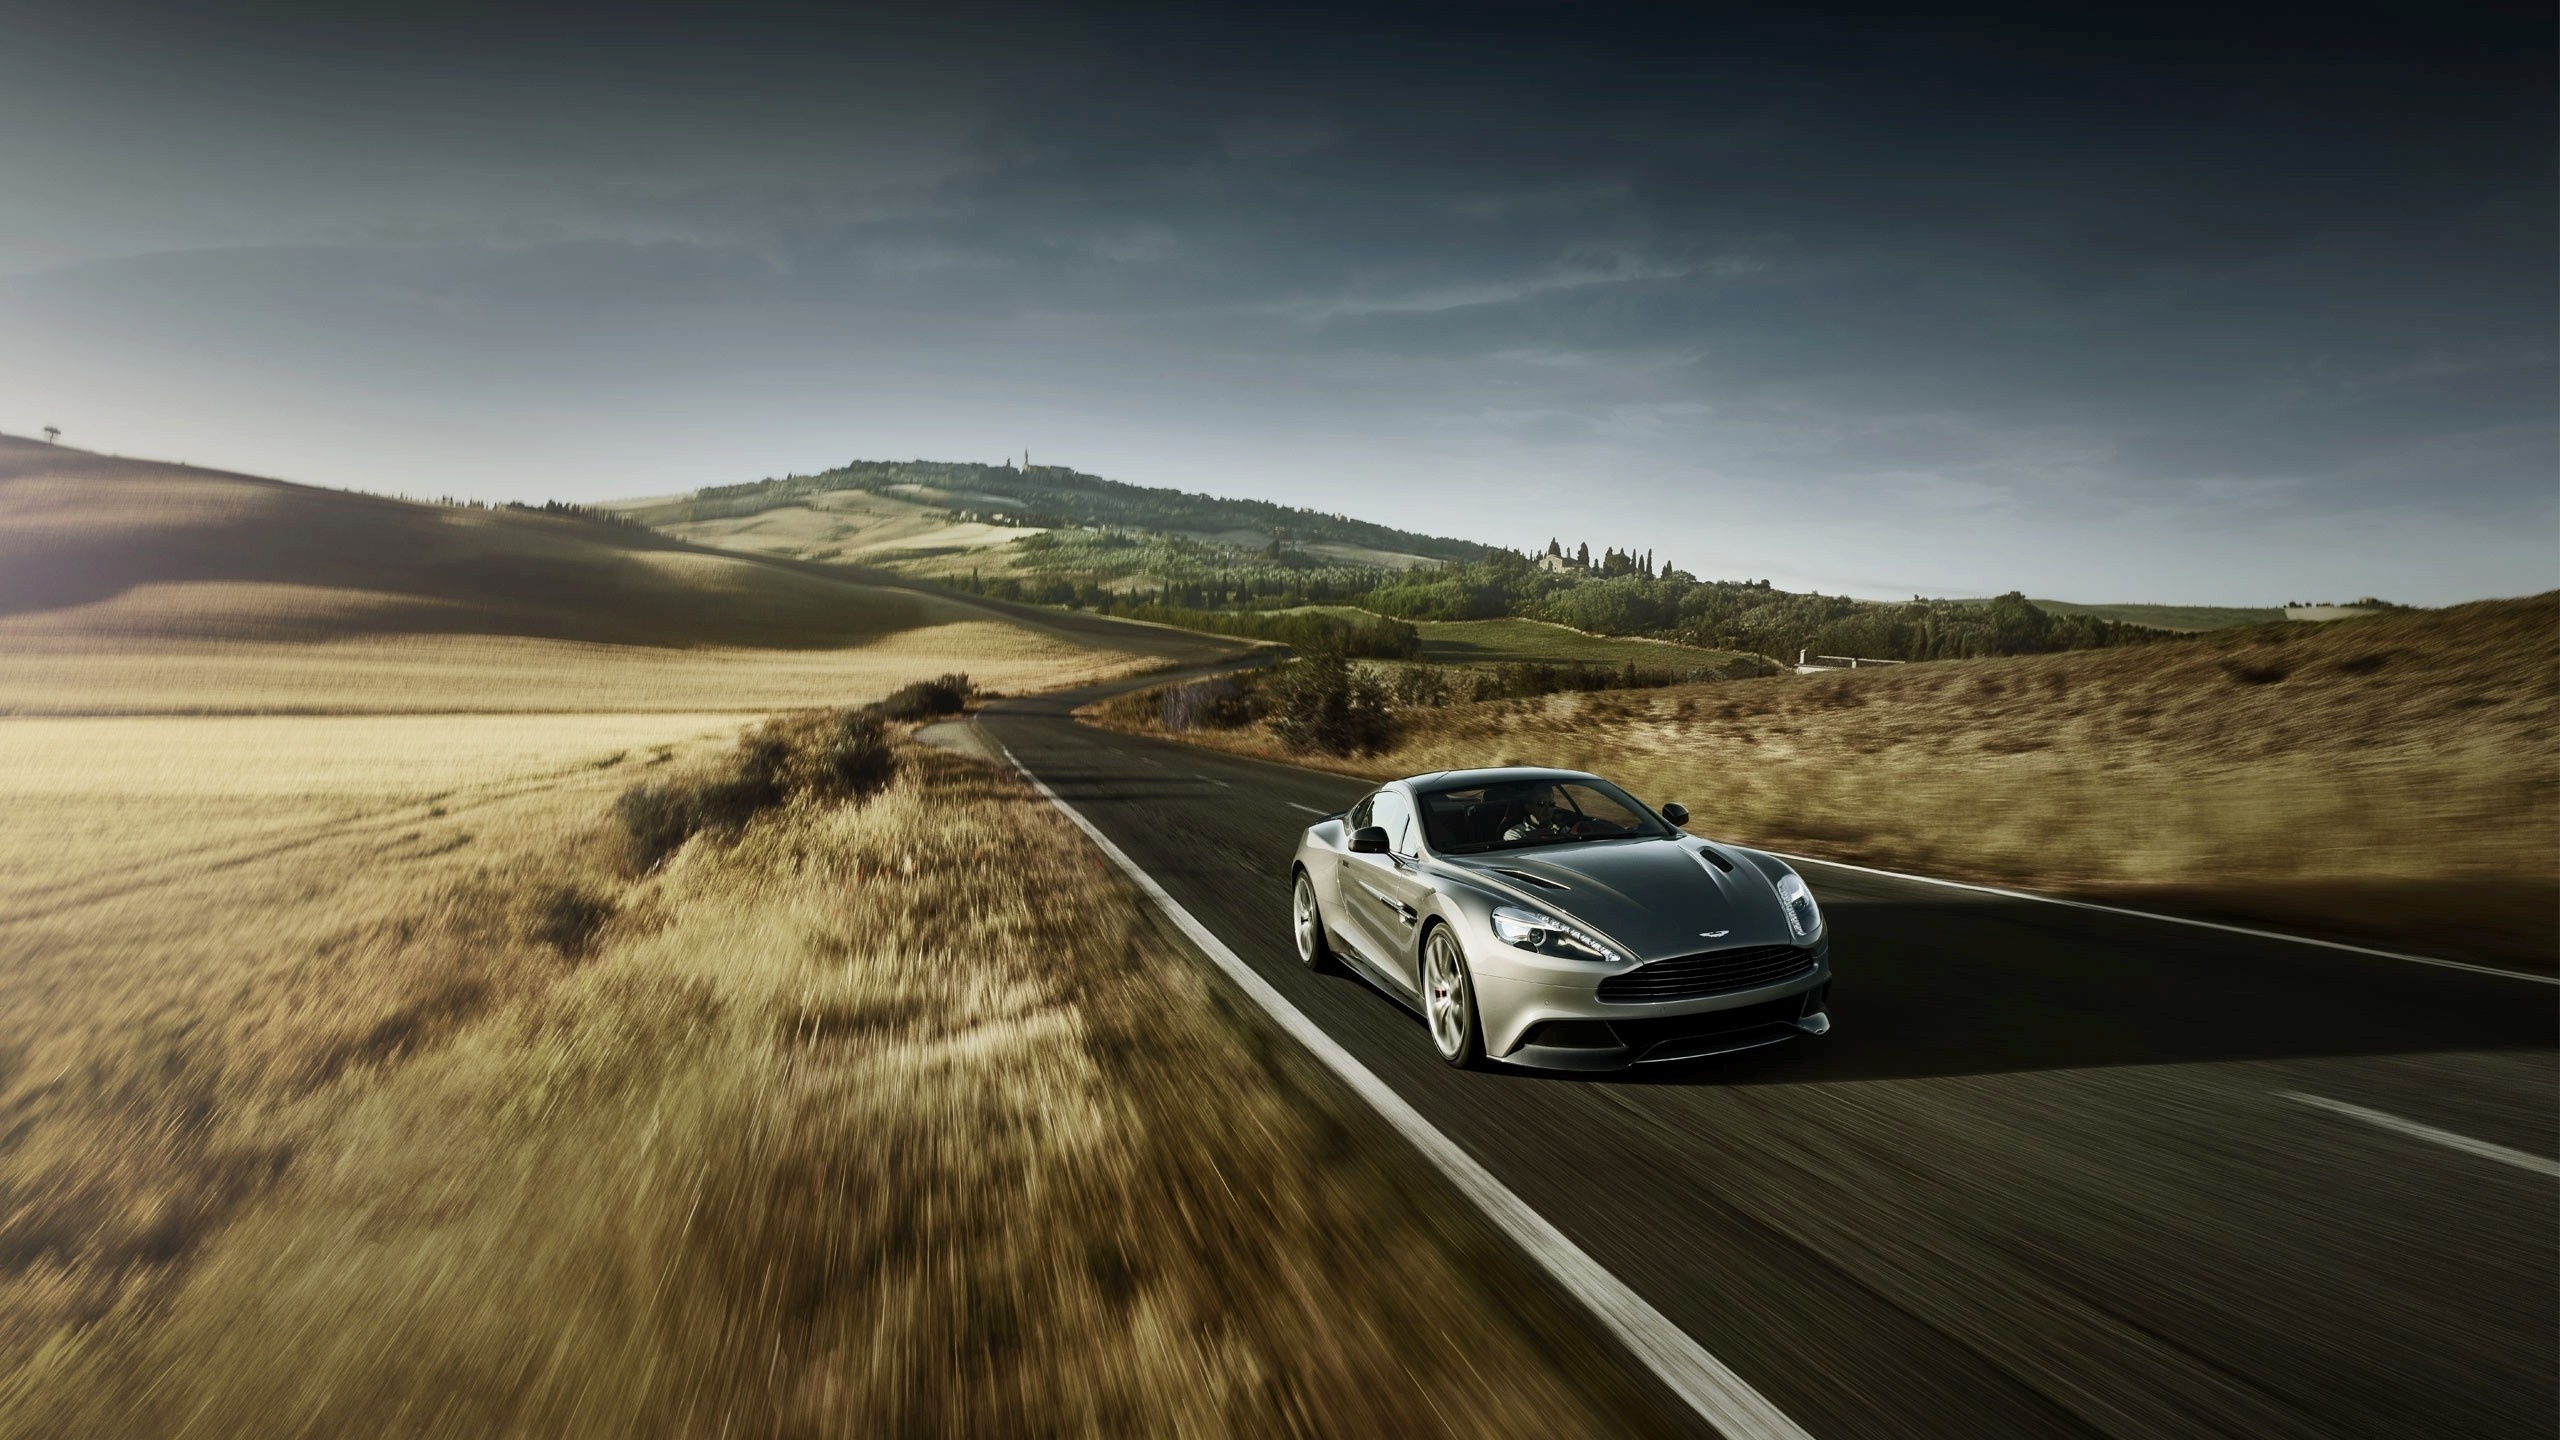 Aston Martin Stock >> 2560x1440 Aston Martin Speeding desktop PC and Mac wallpaper